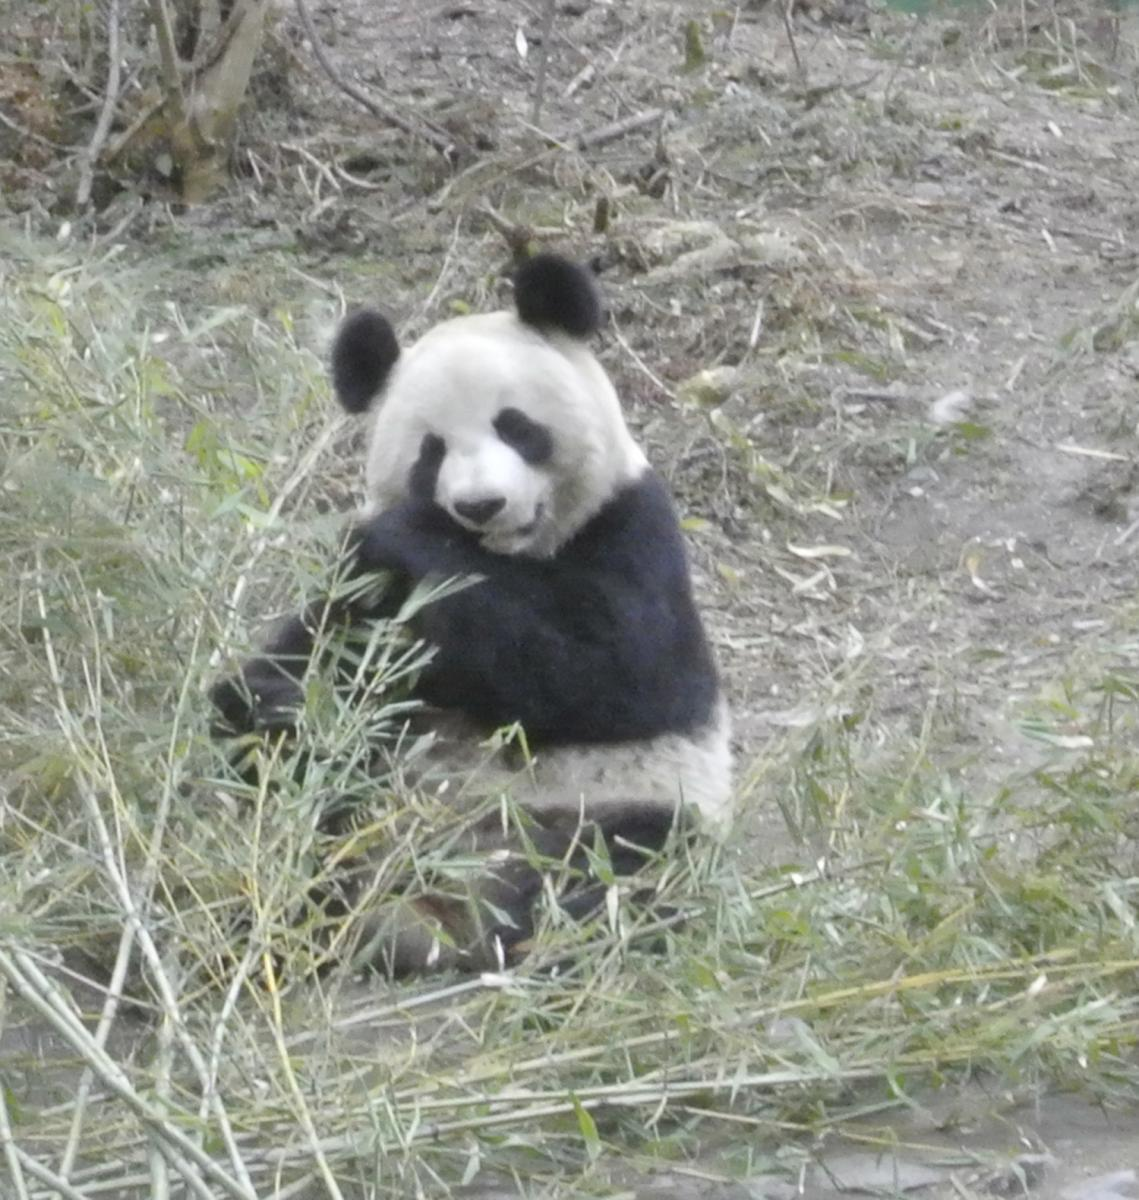 A wild panda munches on bamboo at the Wolong Nature Reserve. Image courtesy of Michigan State University.